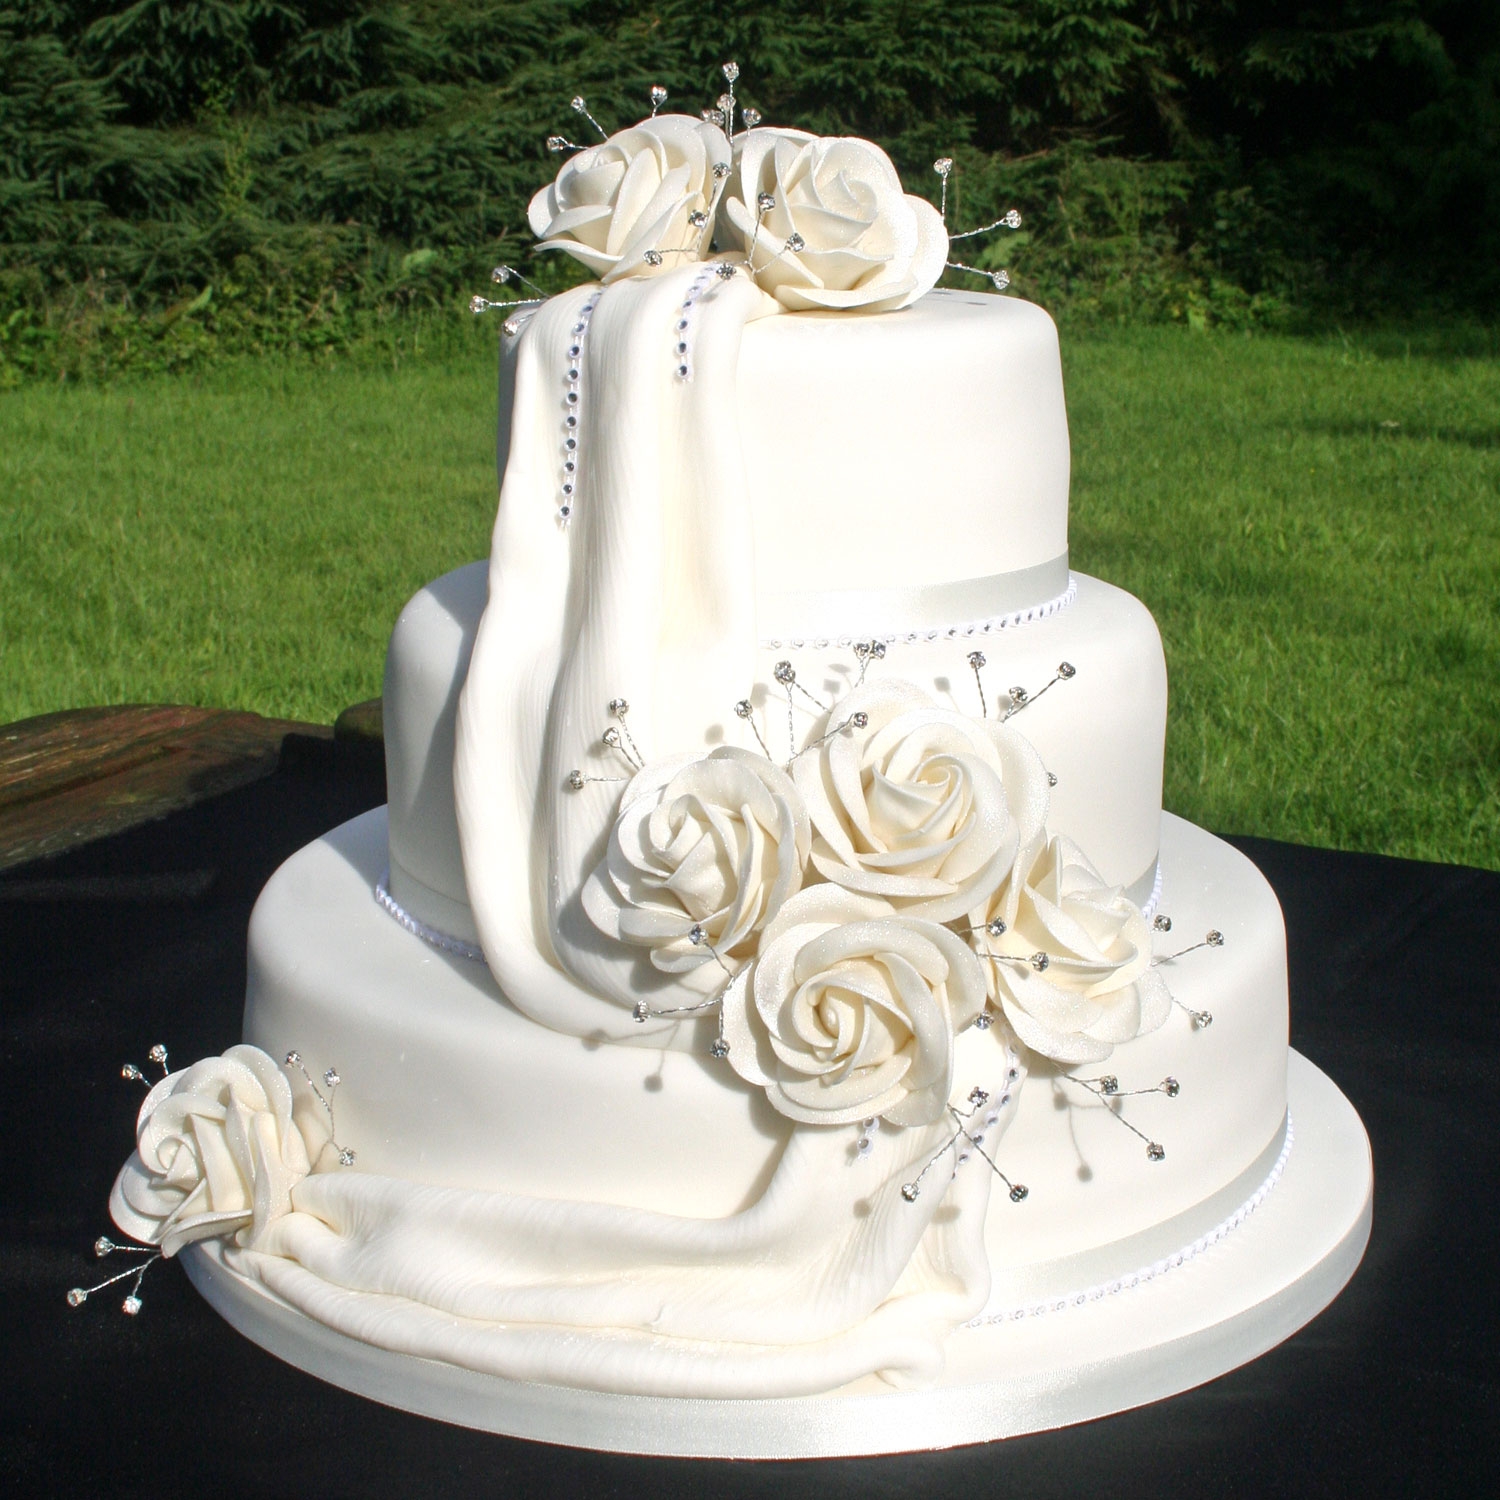 Diamante Drape Wedding Cake With Icing Drapes And Hand Crafted Sugar Roses